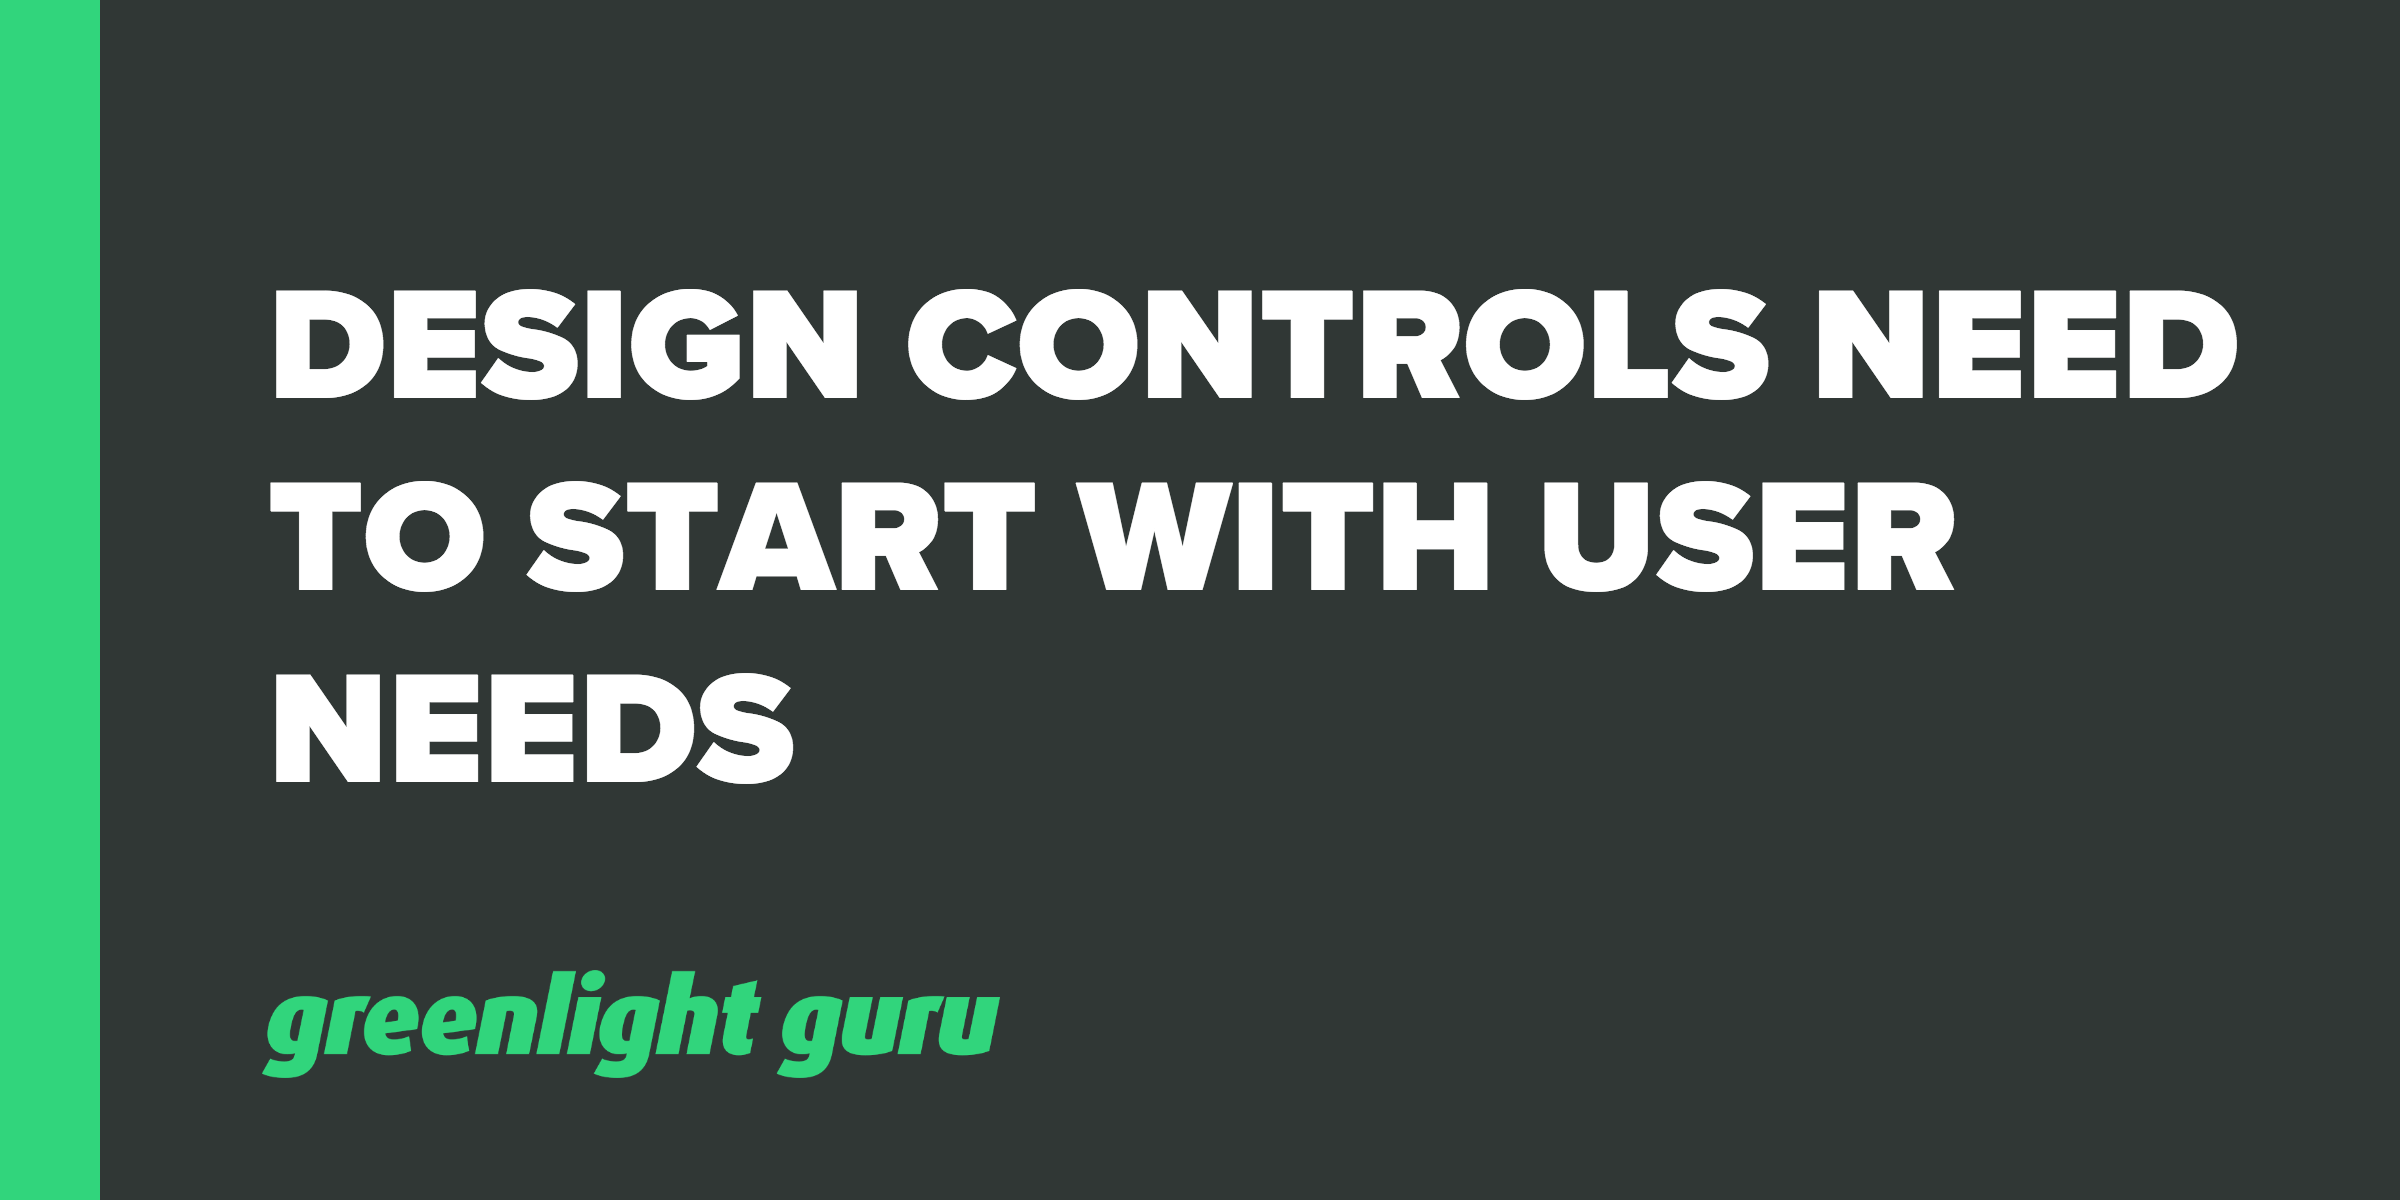 Design Controls Need to Start With User Needs - Featured Image